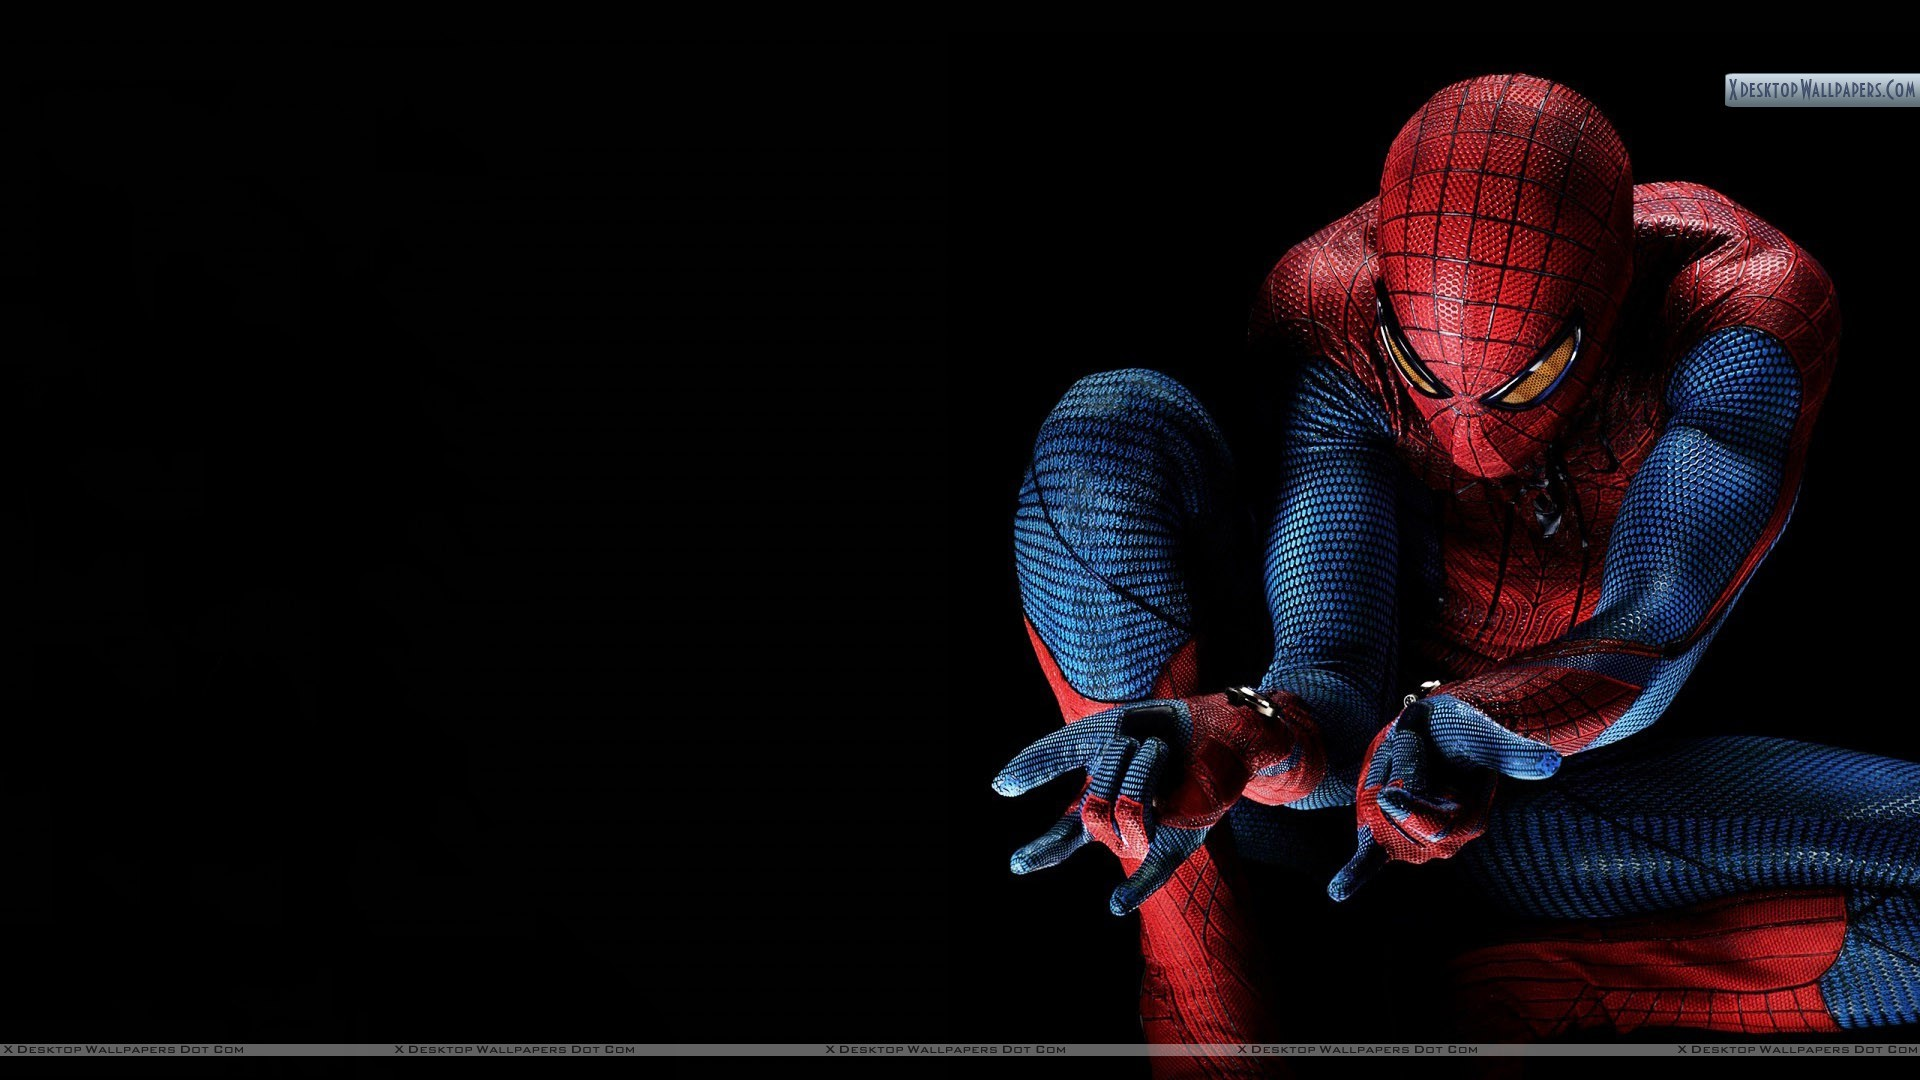 The Superior Spiderman HD Wallpapers Backgrounds Wallpaper 1920×1200 Spiderman  Pics   Adorable Wallpapers   Wallpapers   Pinterest   Spiderman pics, Man  …